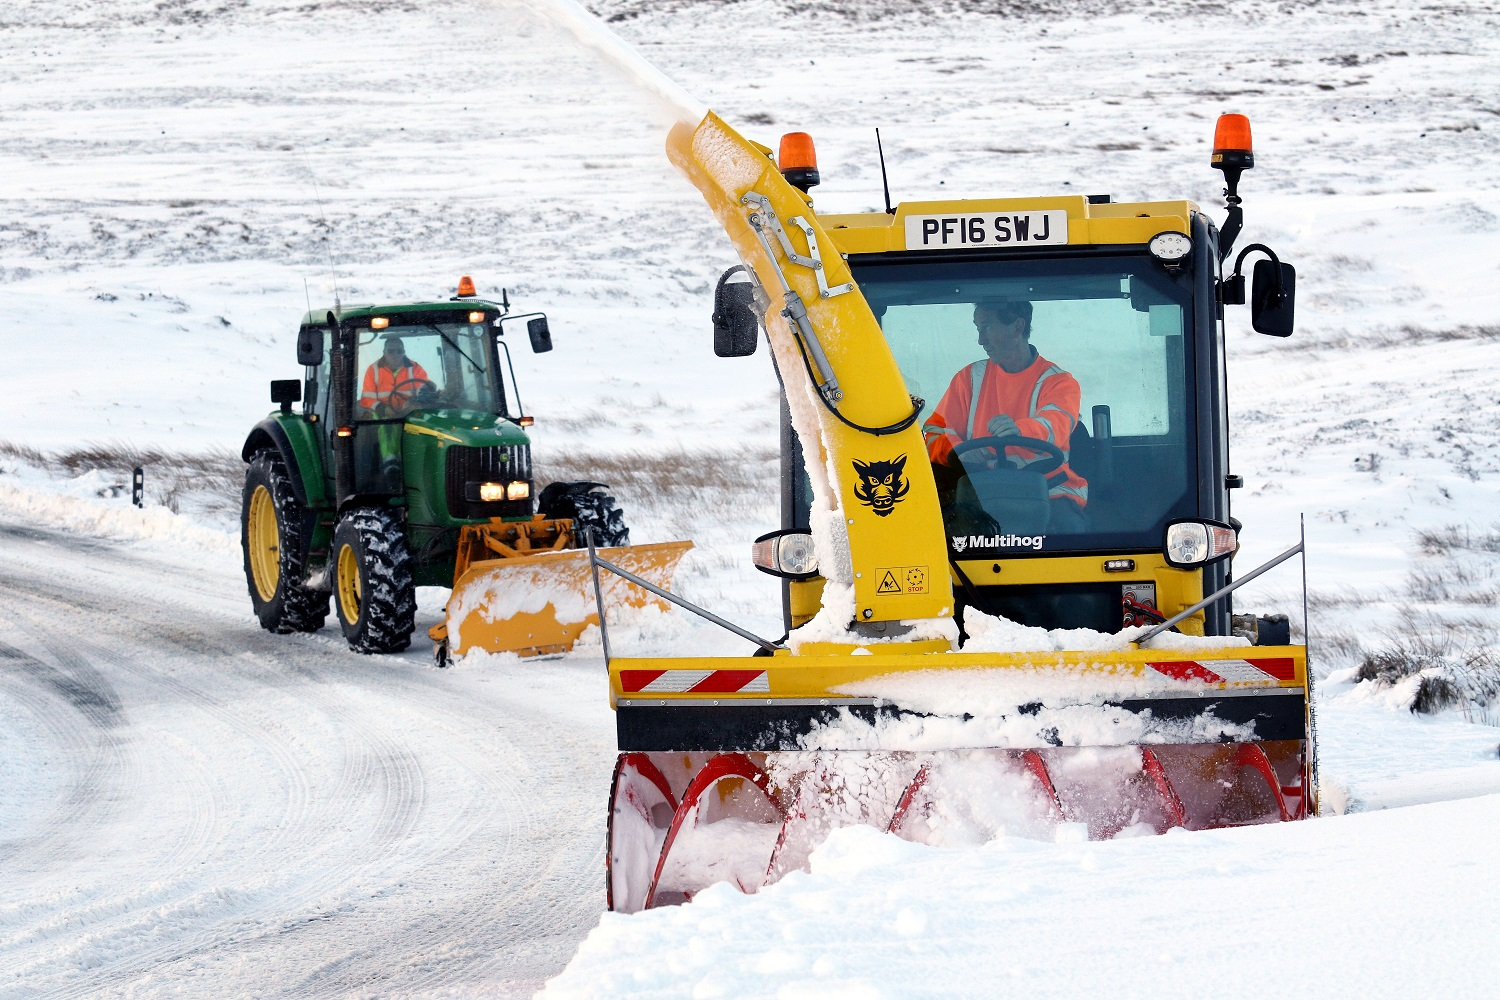 Work is continuing across County Durham to ensure minimum disruption for residents following heavy snowfall. Picture: DURHAM COUNTY COUNCIL